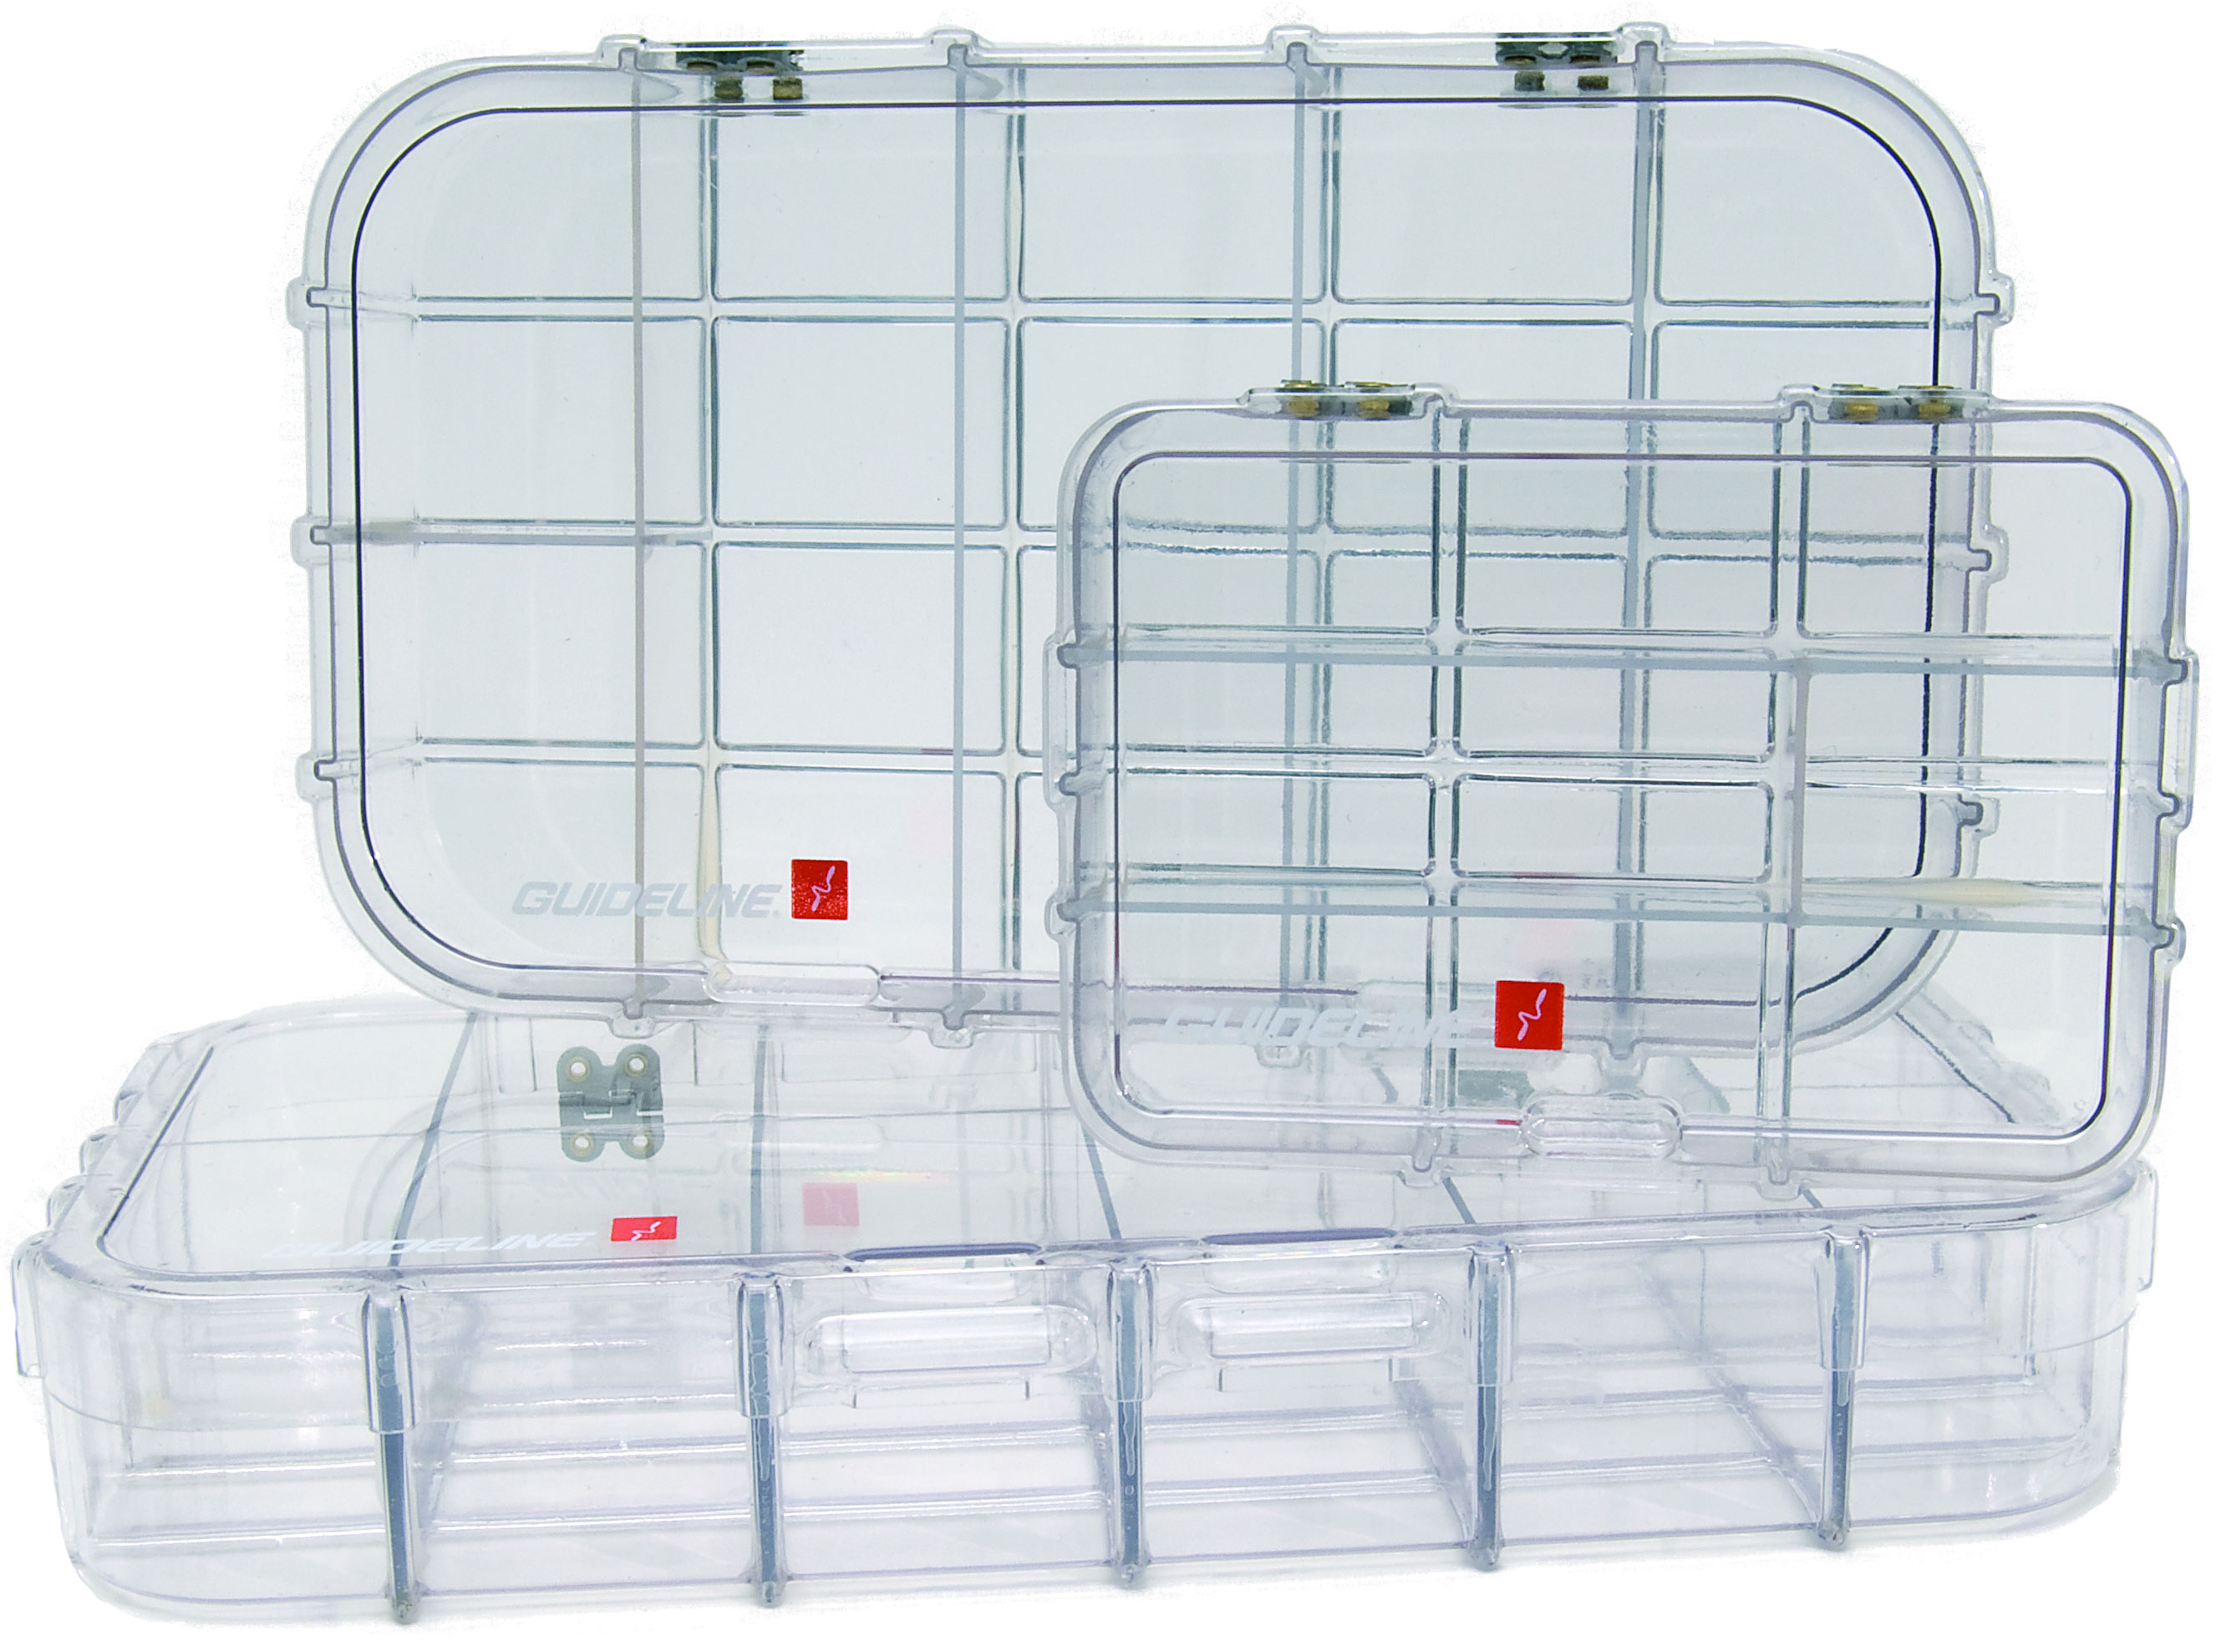 Guideline dewitt fly boxes glasgow angling centre for Fly fishing box